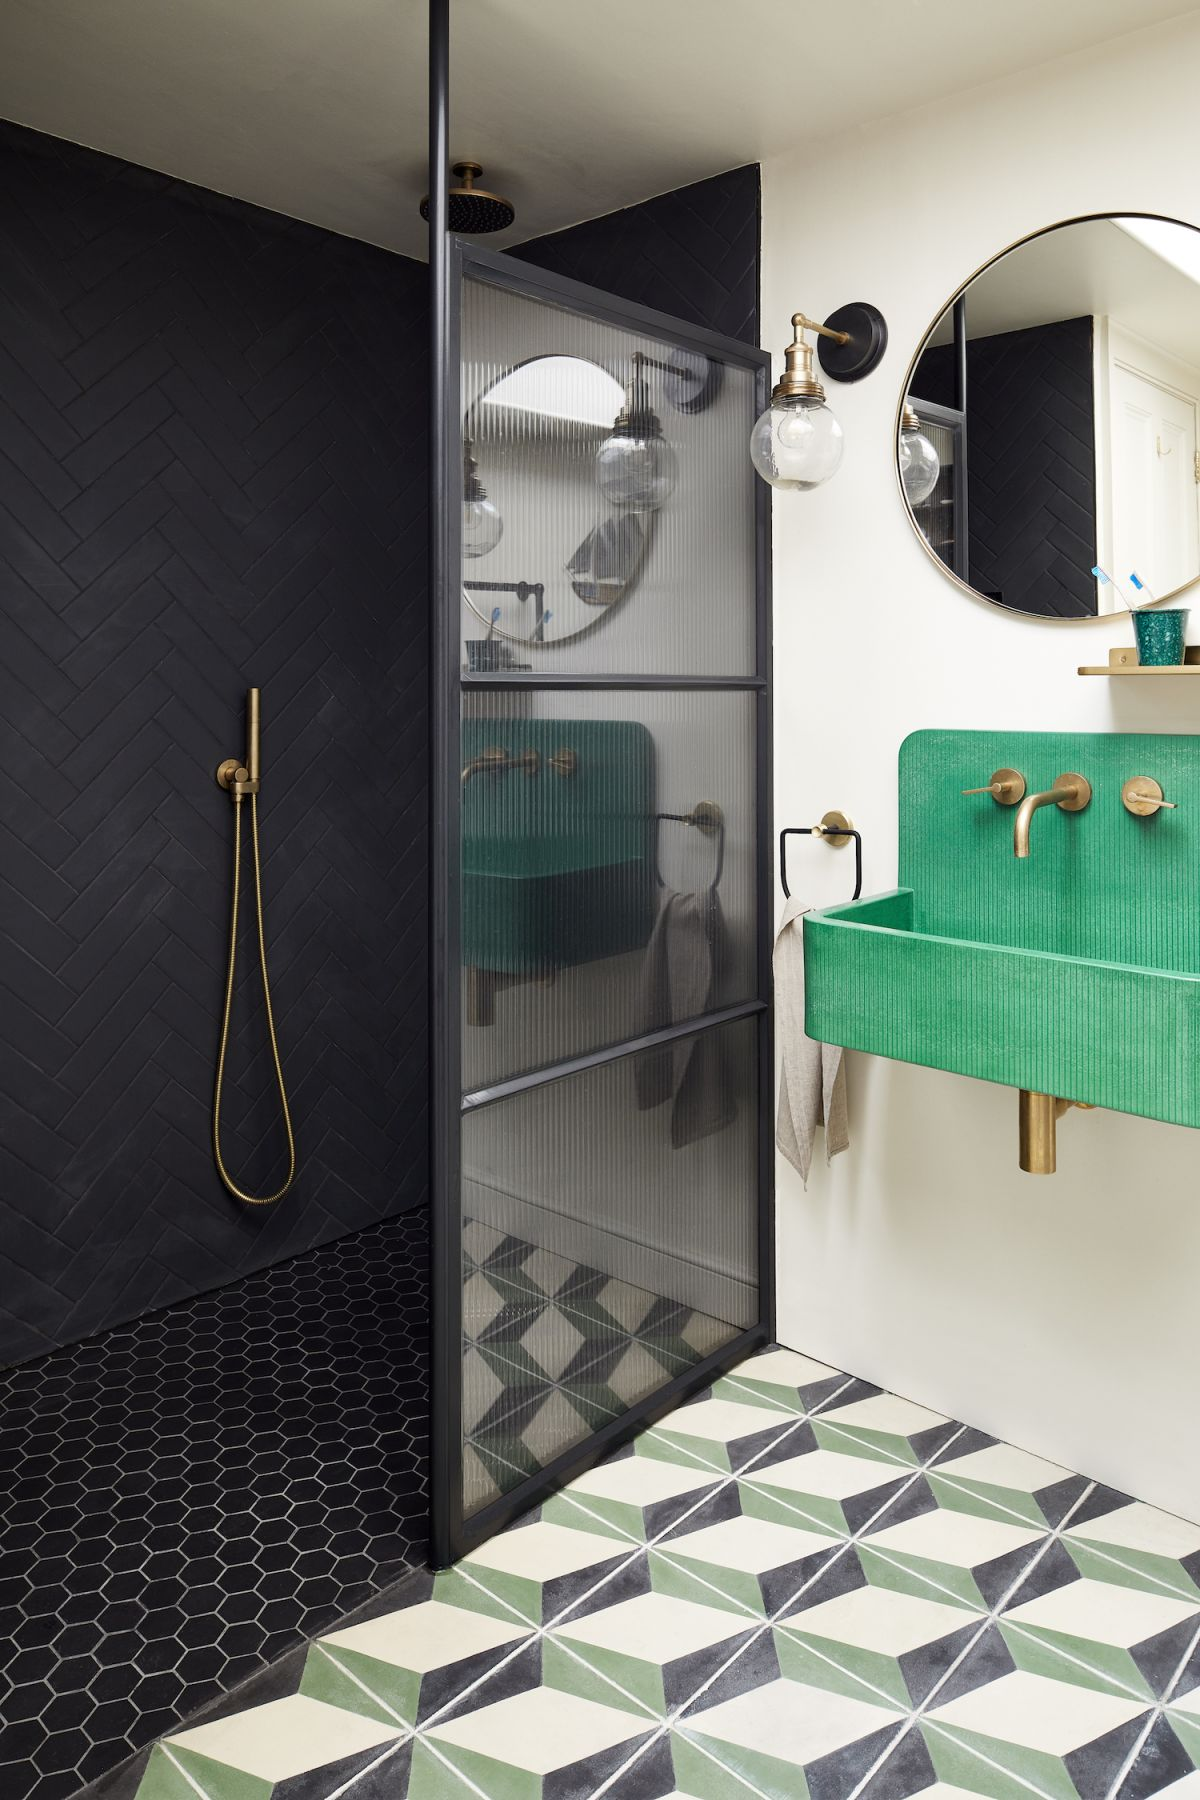 Create the perfect layout for a small bathroom with these ideas